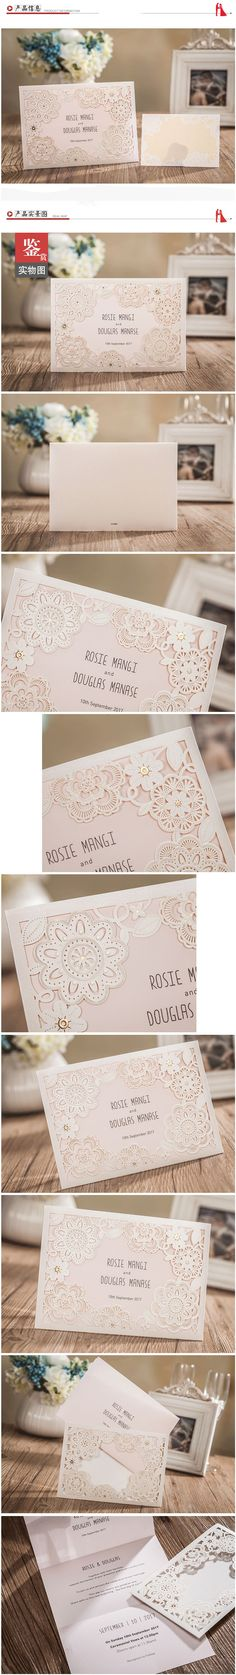 20-Laser Cut Laces Wedding Invitation Cards With Custom Personalized Printing